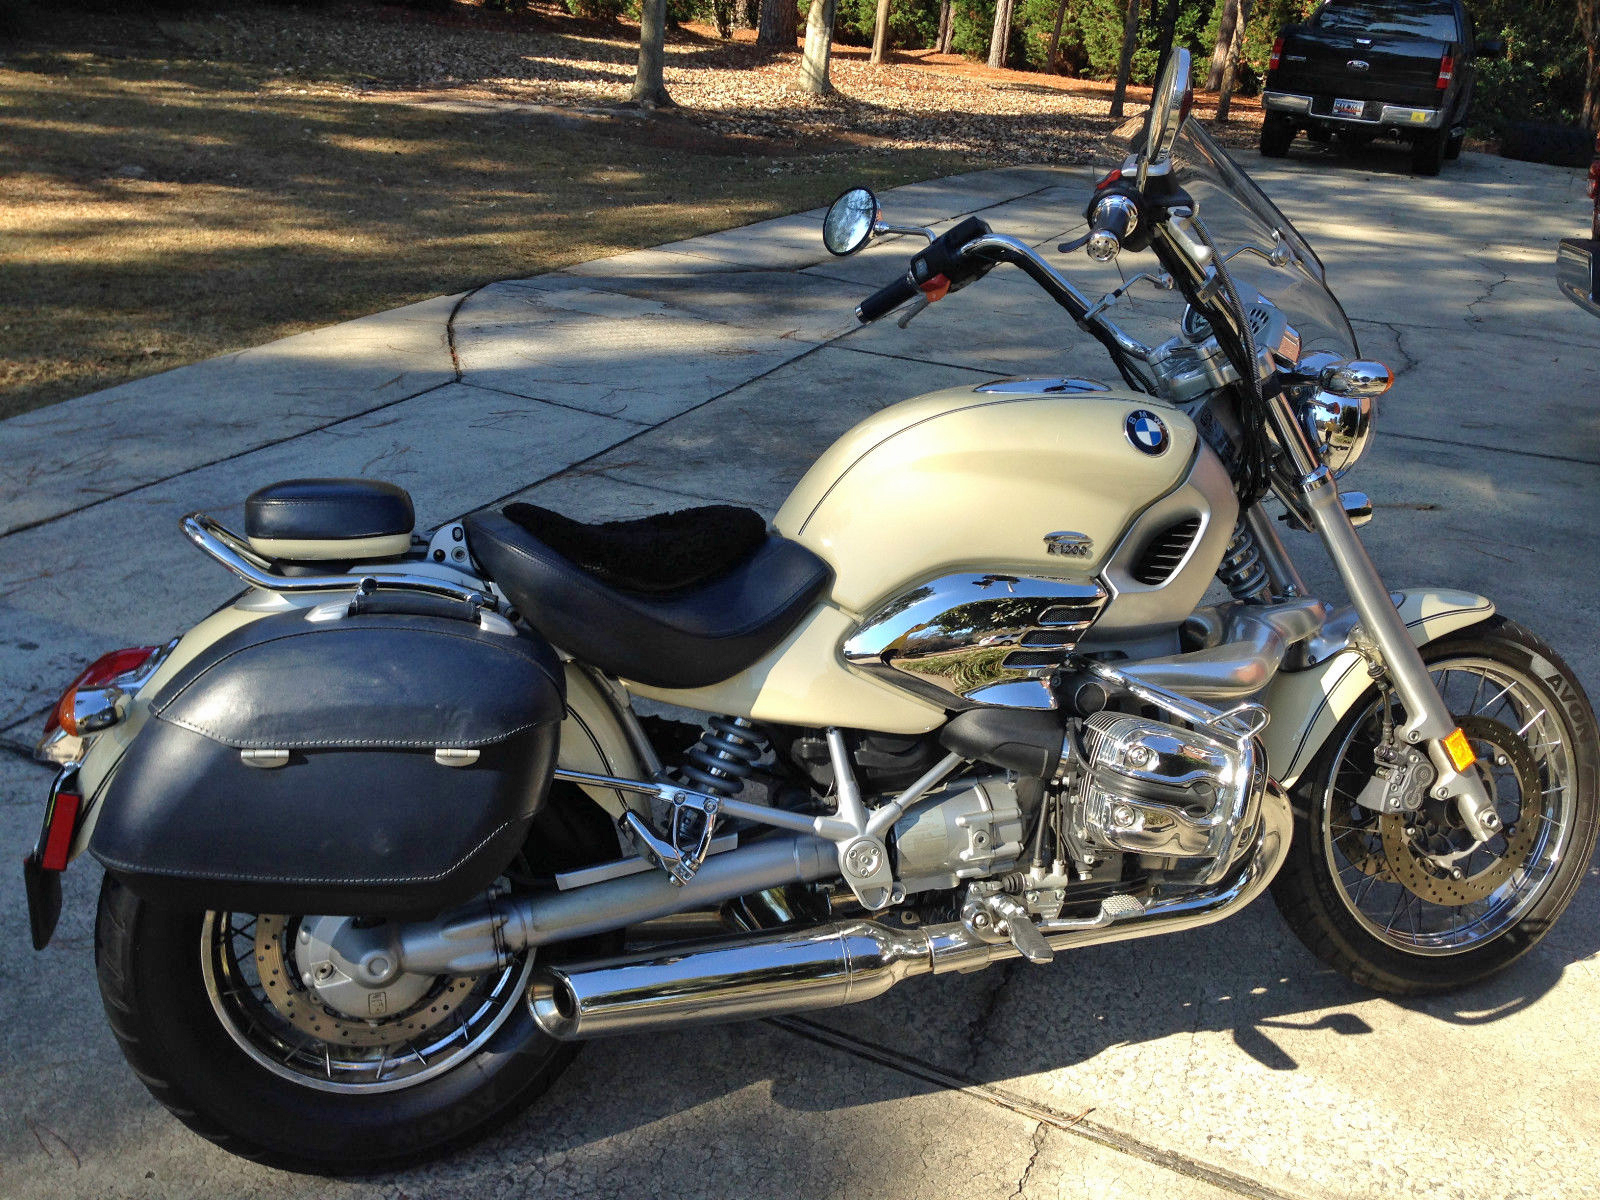 bmw-r1200c-classic-7 Exciting Bmw R 1200 Cl forum Cars Trend